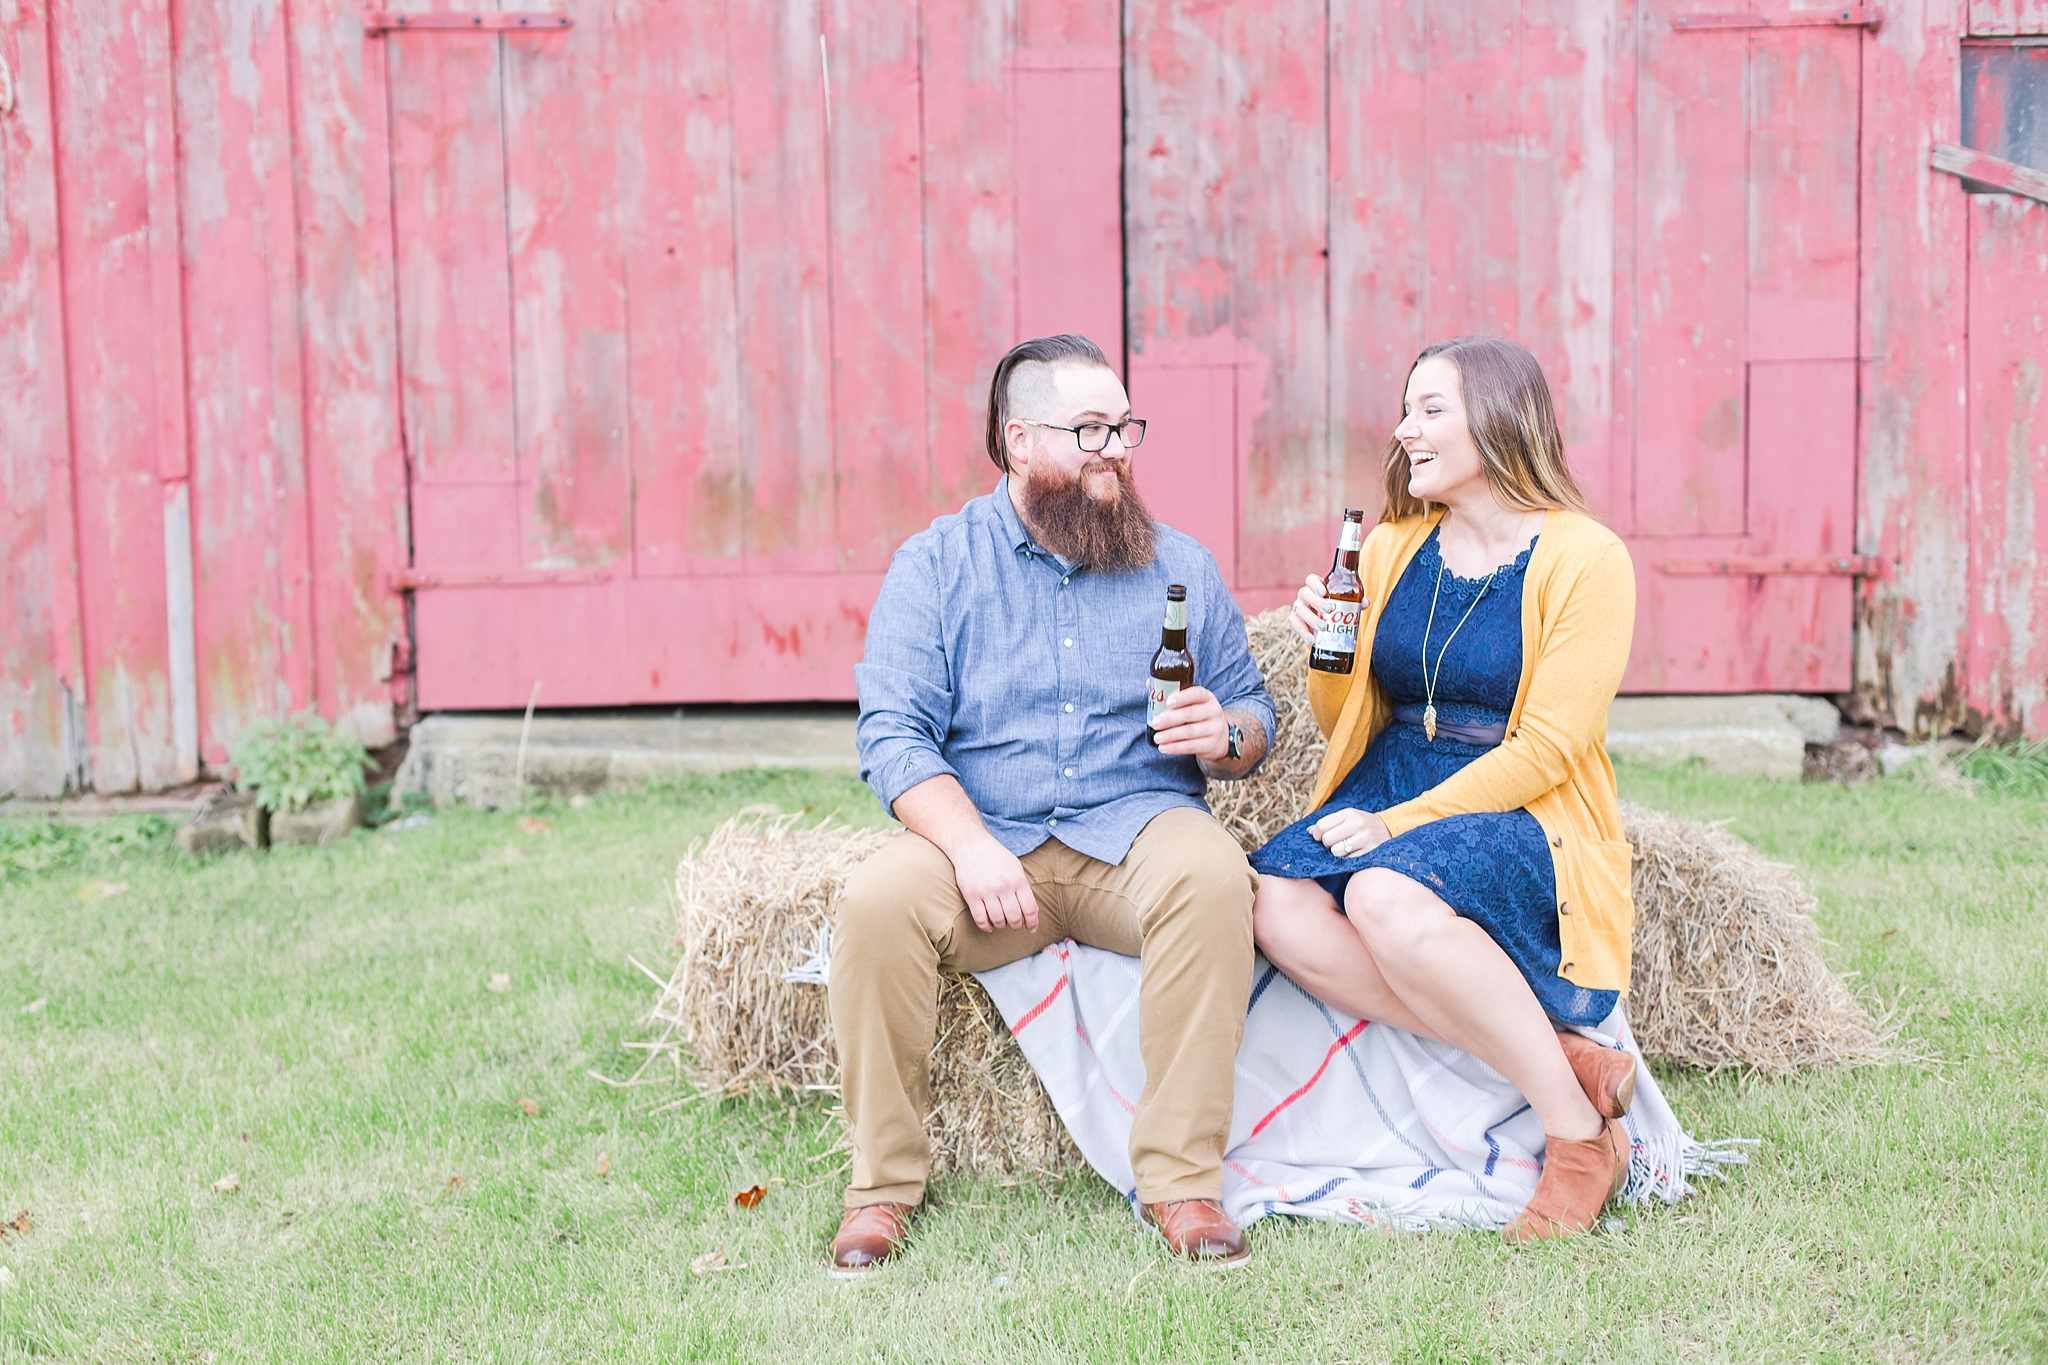 cozy-fall-engagement-photos-at-an-old-family-farm-in-monroe-michigan-by-courtney-carolyn-photography_0007.jpg